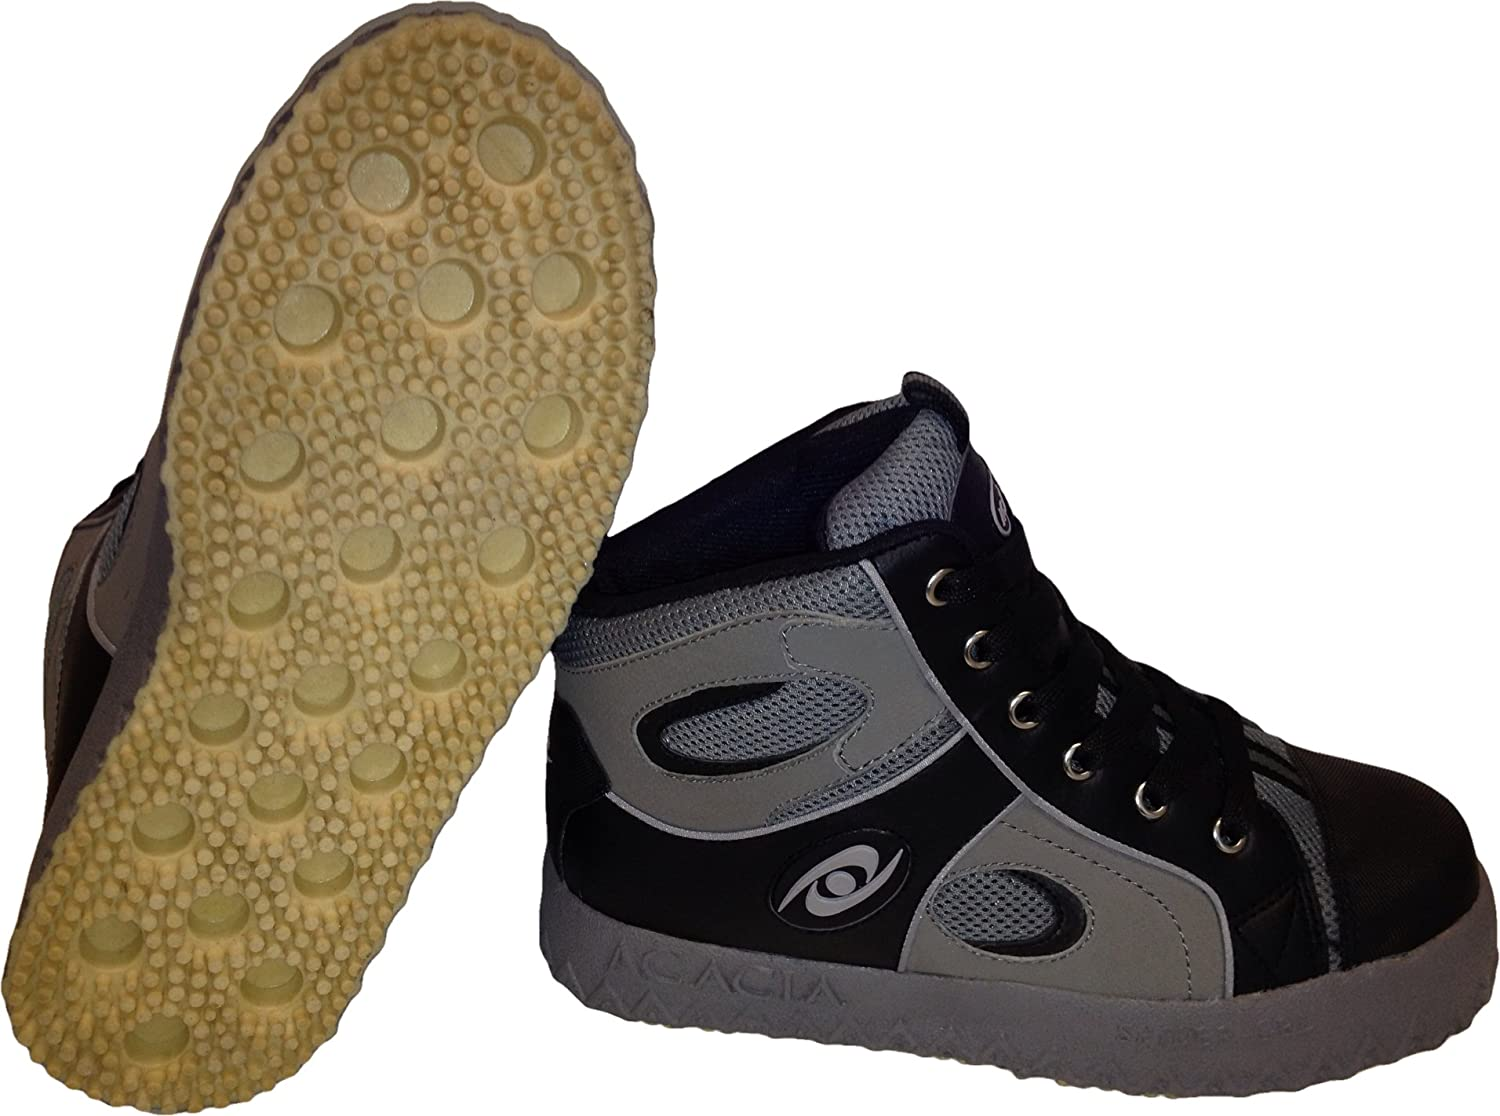 Acacia Grip Inator Broomball Shoes